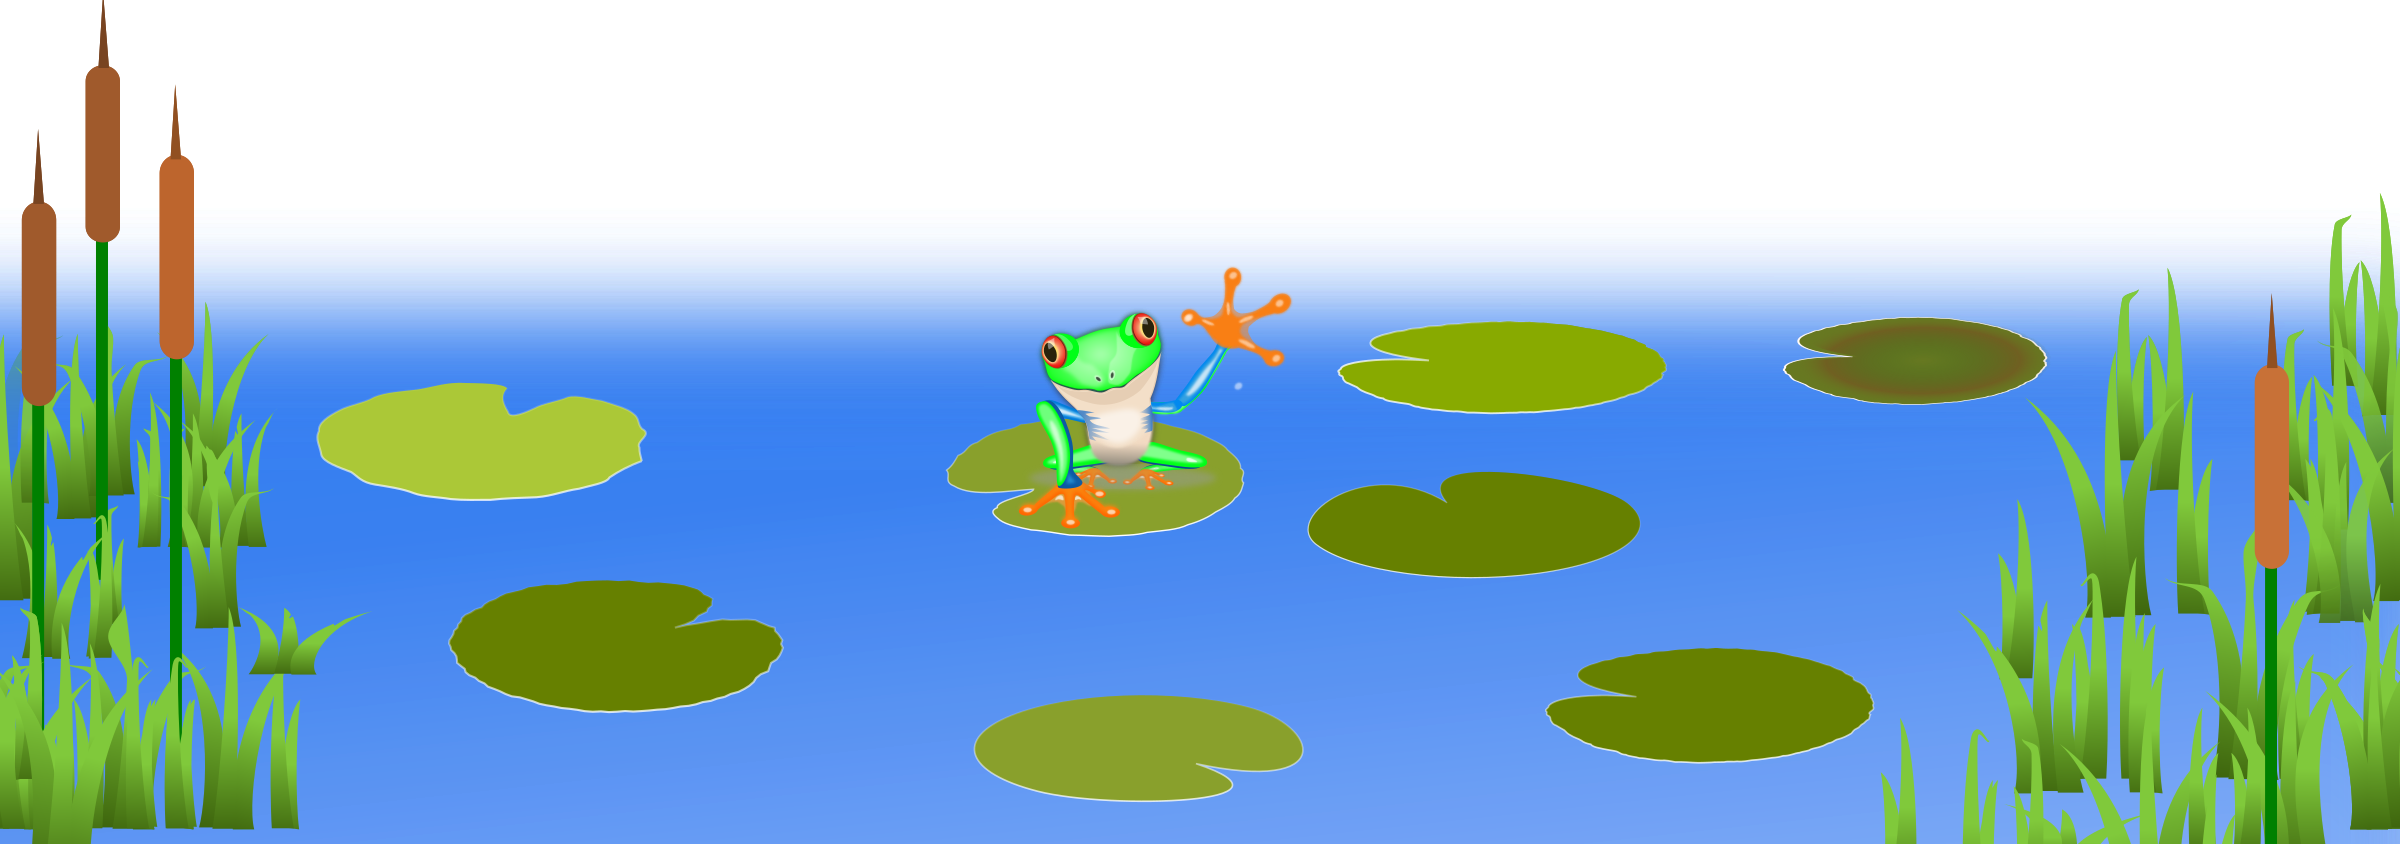 Lily pad pond scene. Louisiana clipart cool